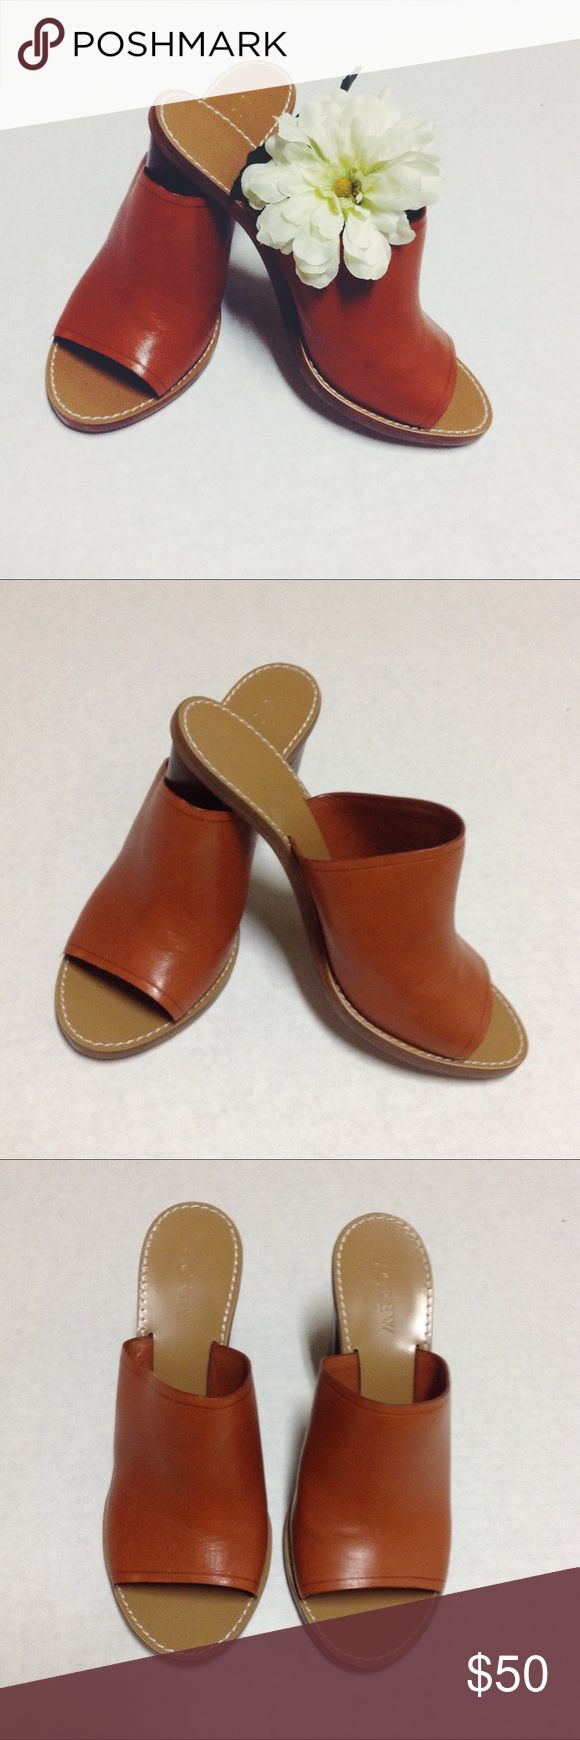 """J Crew Marlow Mules J Crew Marlow Mules open toe heeled sandals size 6.5. 3.5"""" heel. Leather upper and lining. Wide stacked heel. Beautiful tan orange leather. Euc. There is wear on the sole as pictured in photos 5-6. J. Crew Shoes Mules & Clogs"""